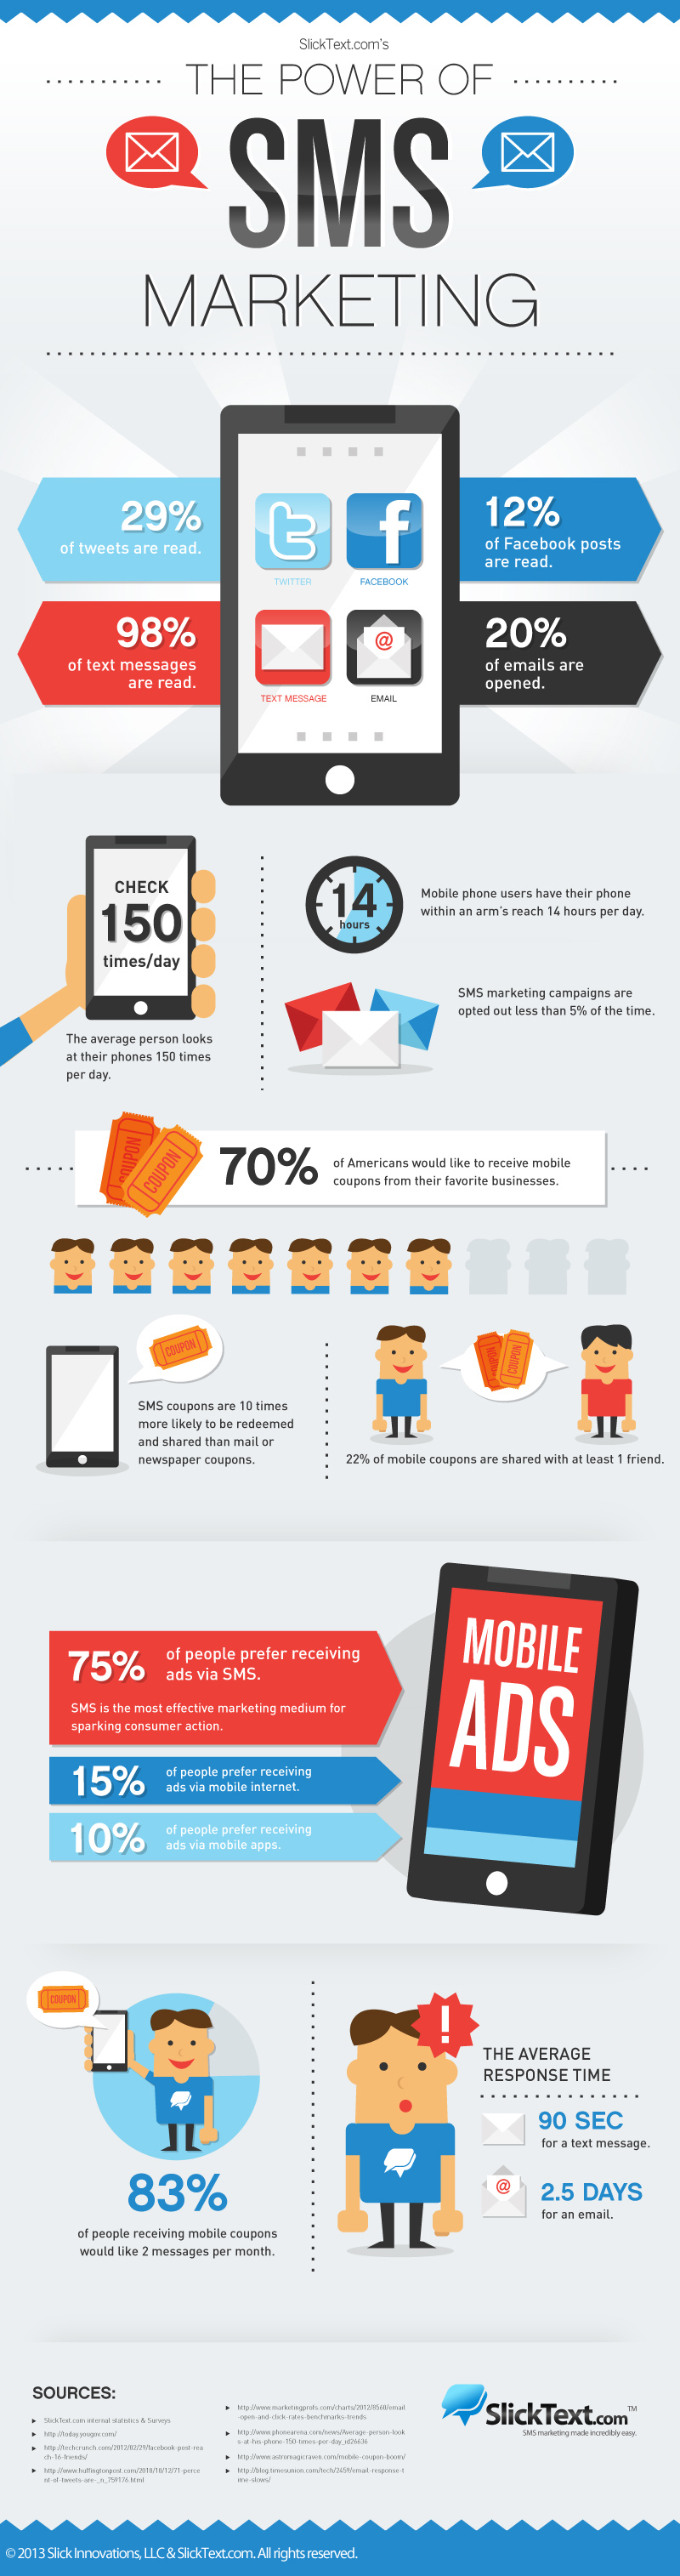 sms-marketing-infographic1